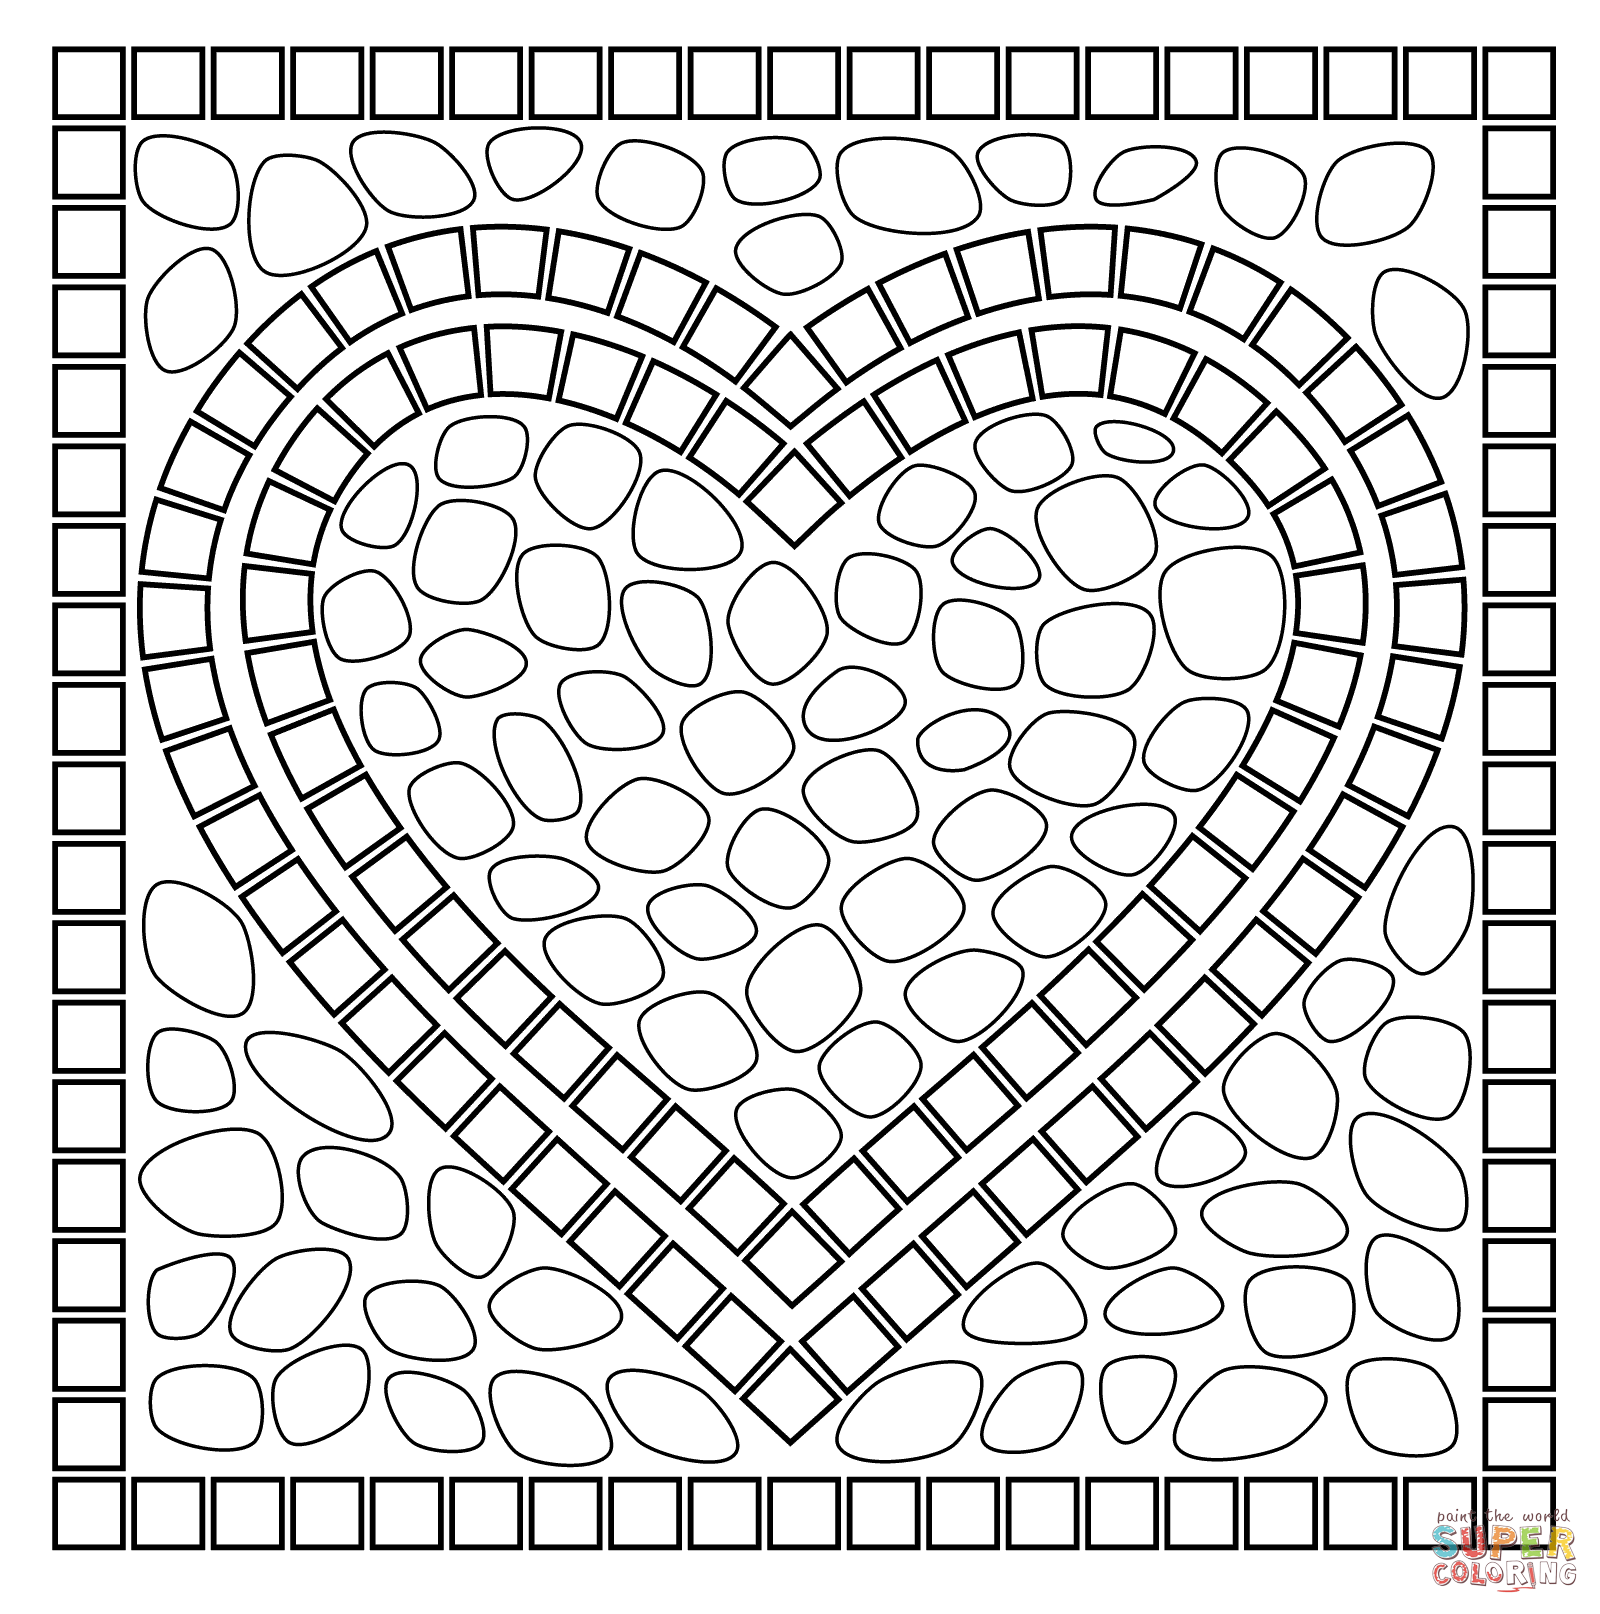 mosaic coloring pages to print mosaic coloring pages of animals coloring home print pages coloring to mosaic